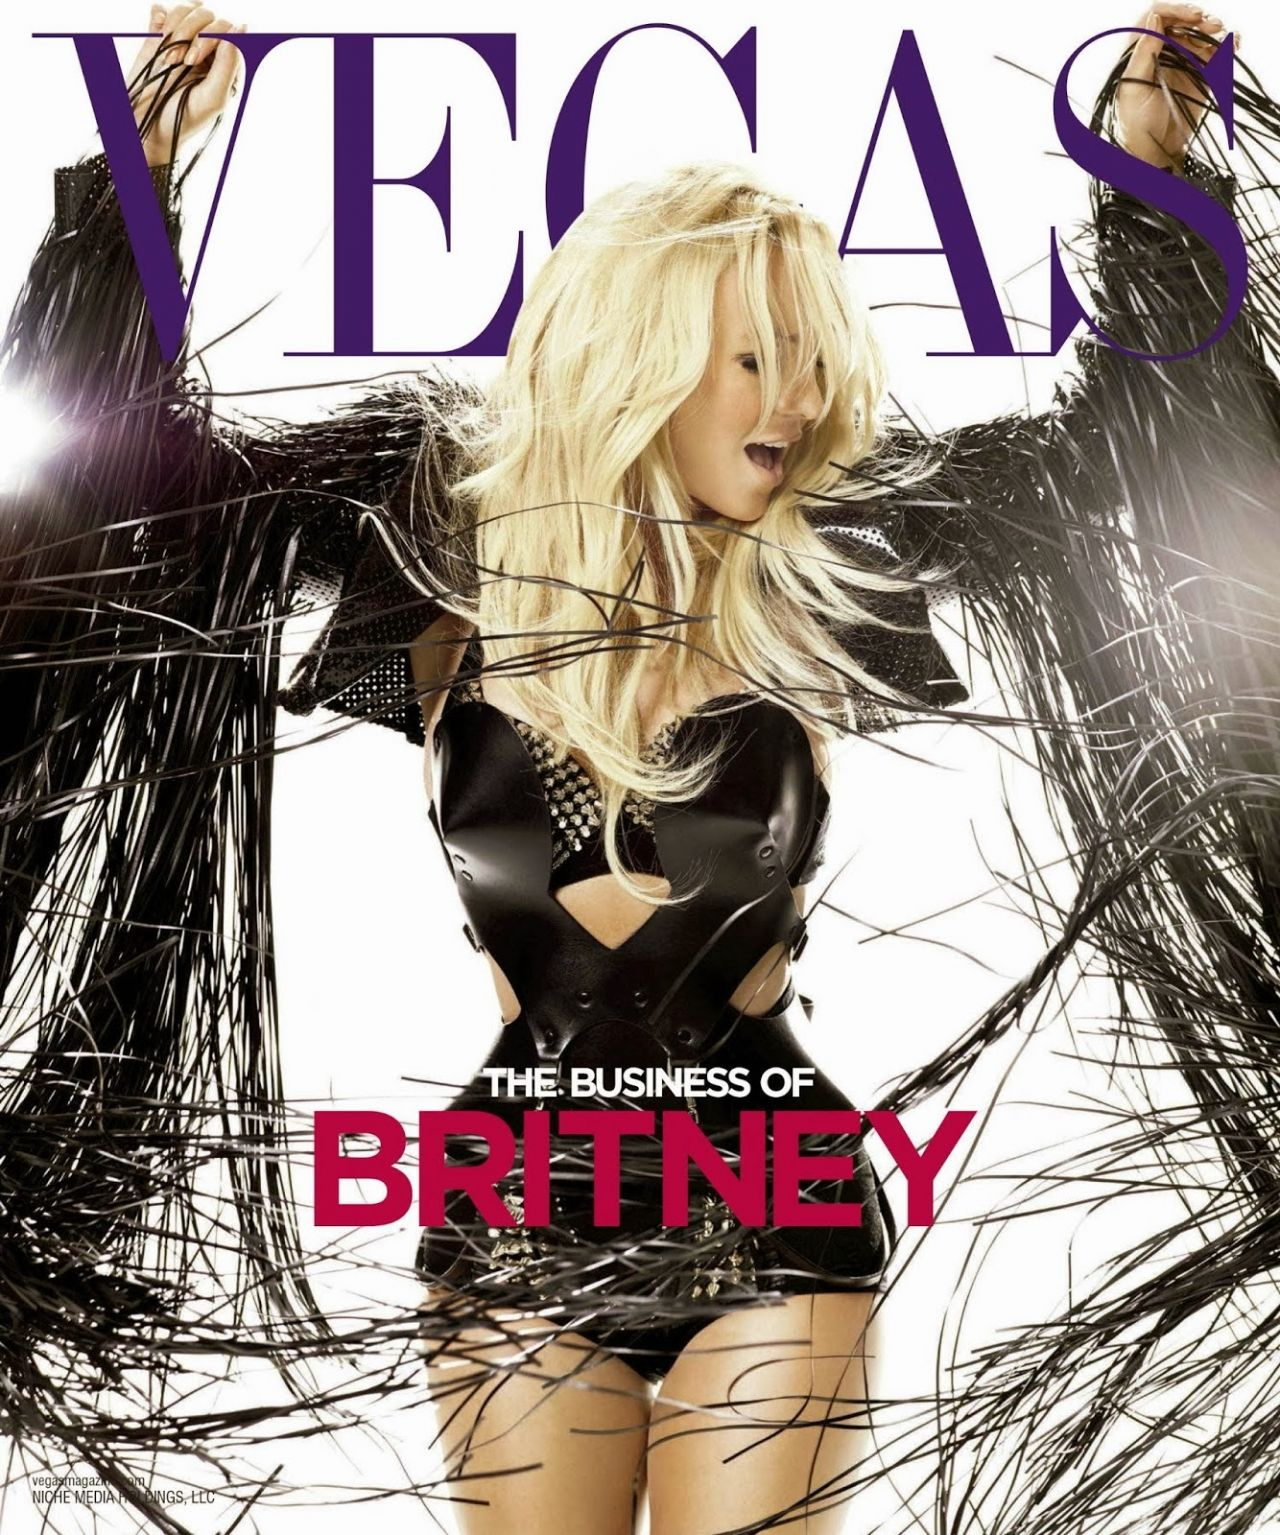 Britney Spears - VEGAS Magazine (EUA) - February 2014 Cover